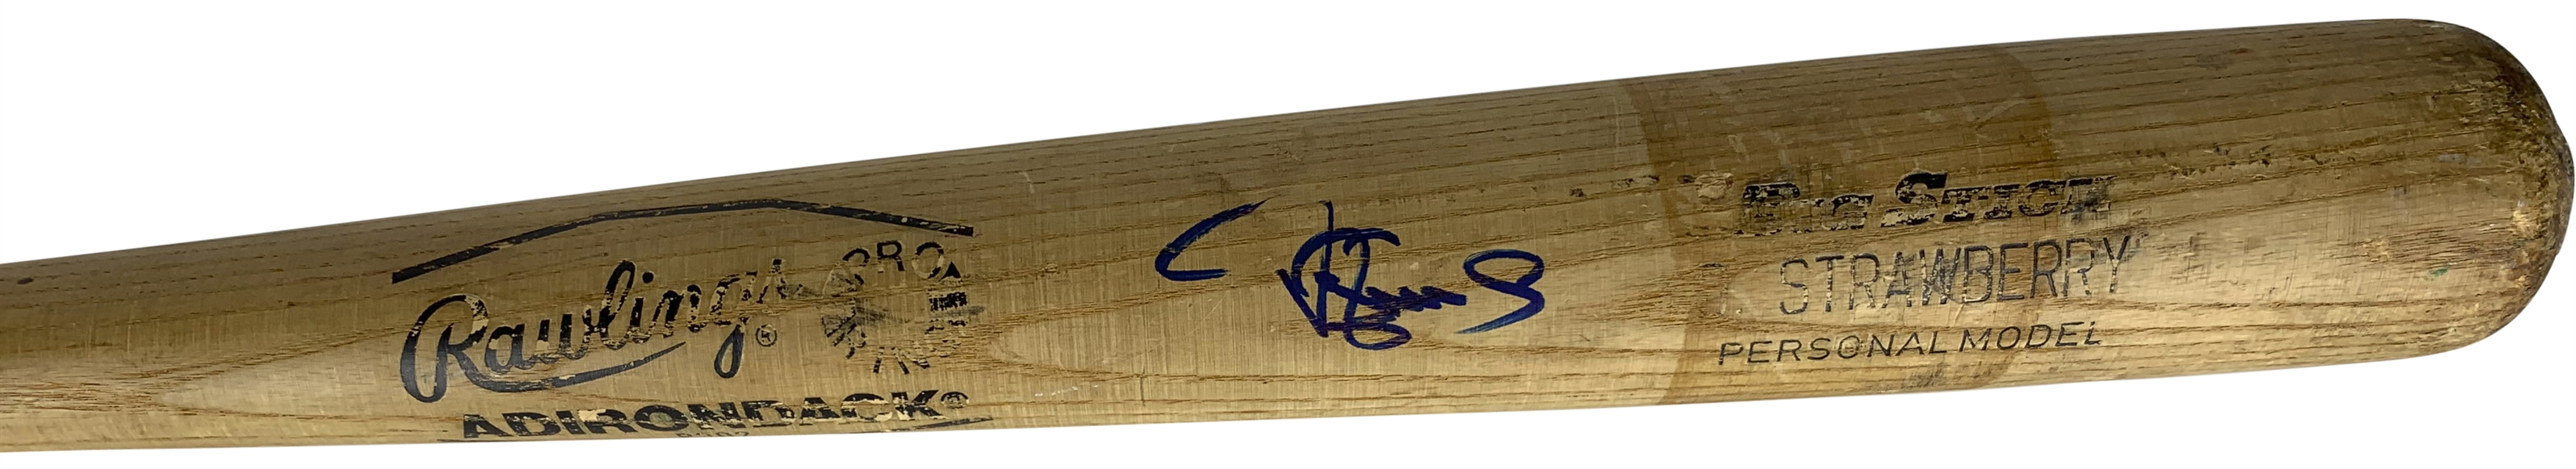 Darryl Strawberry Signed & Game Used 1984 Mets 113A Baseball Bat (PSA/DNA)